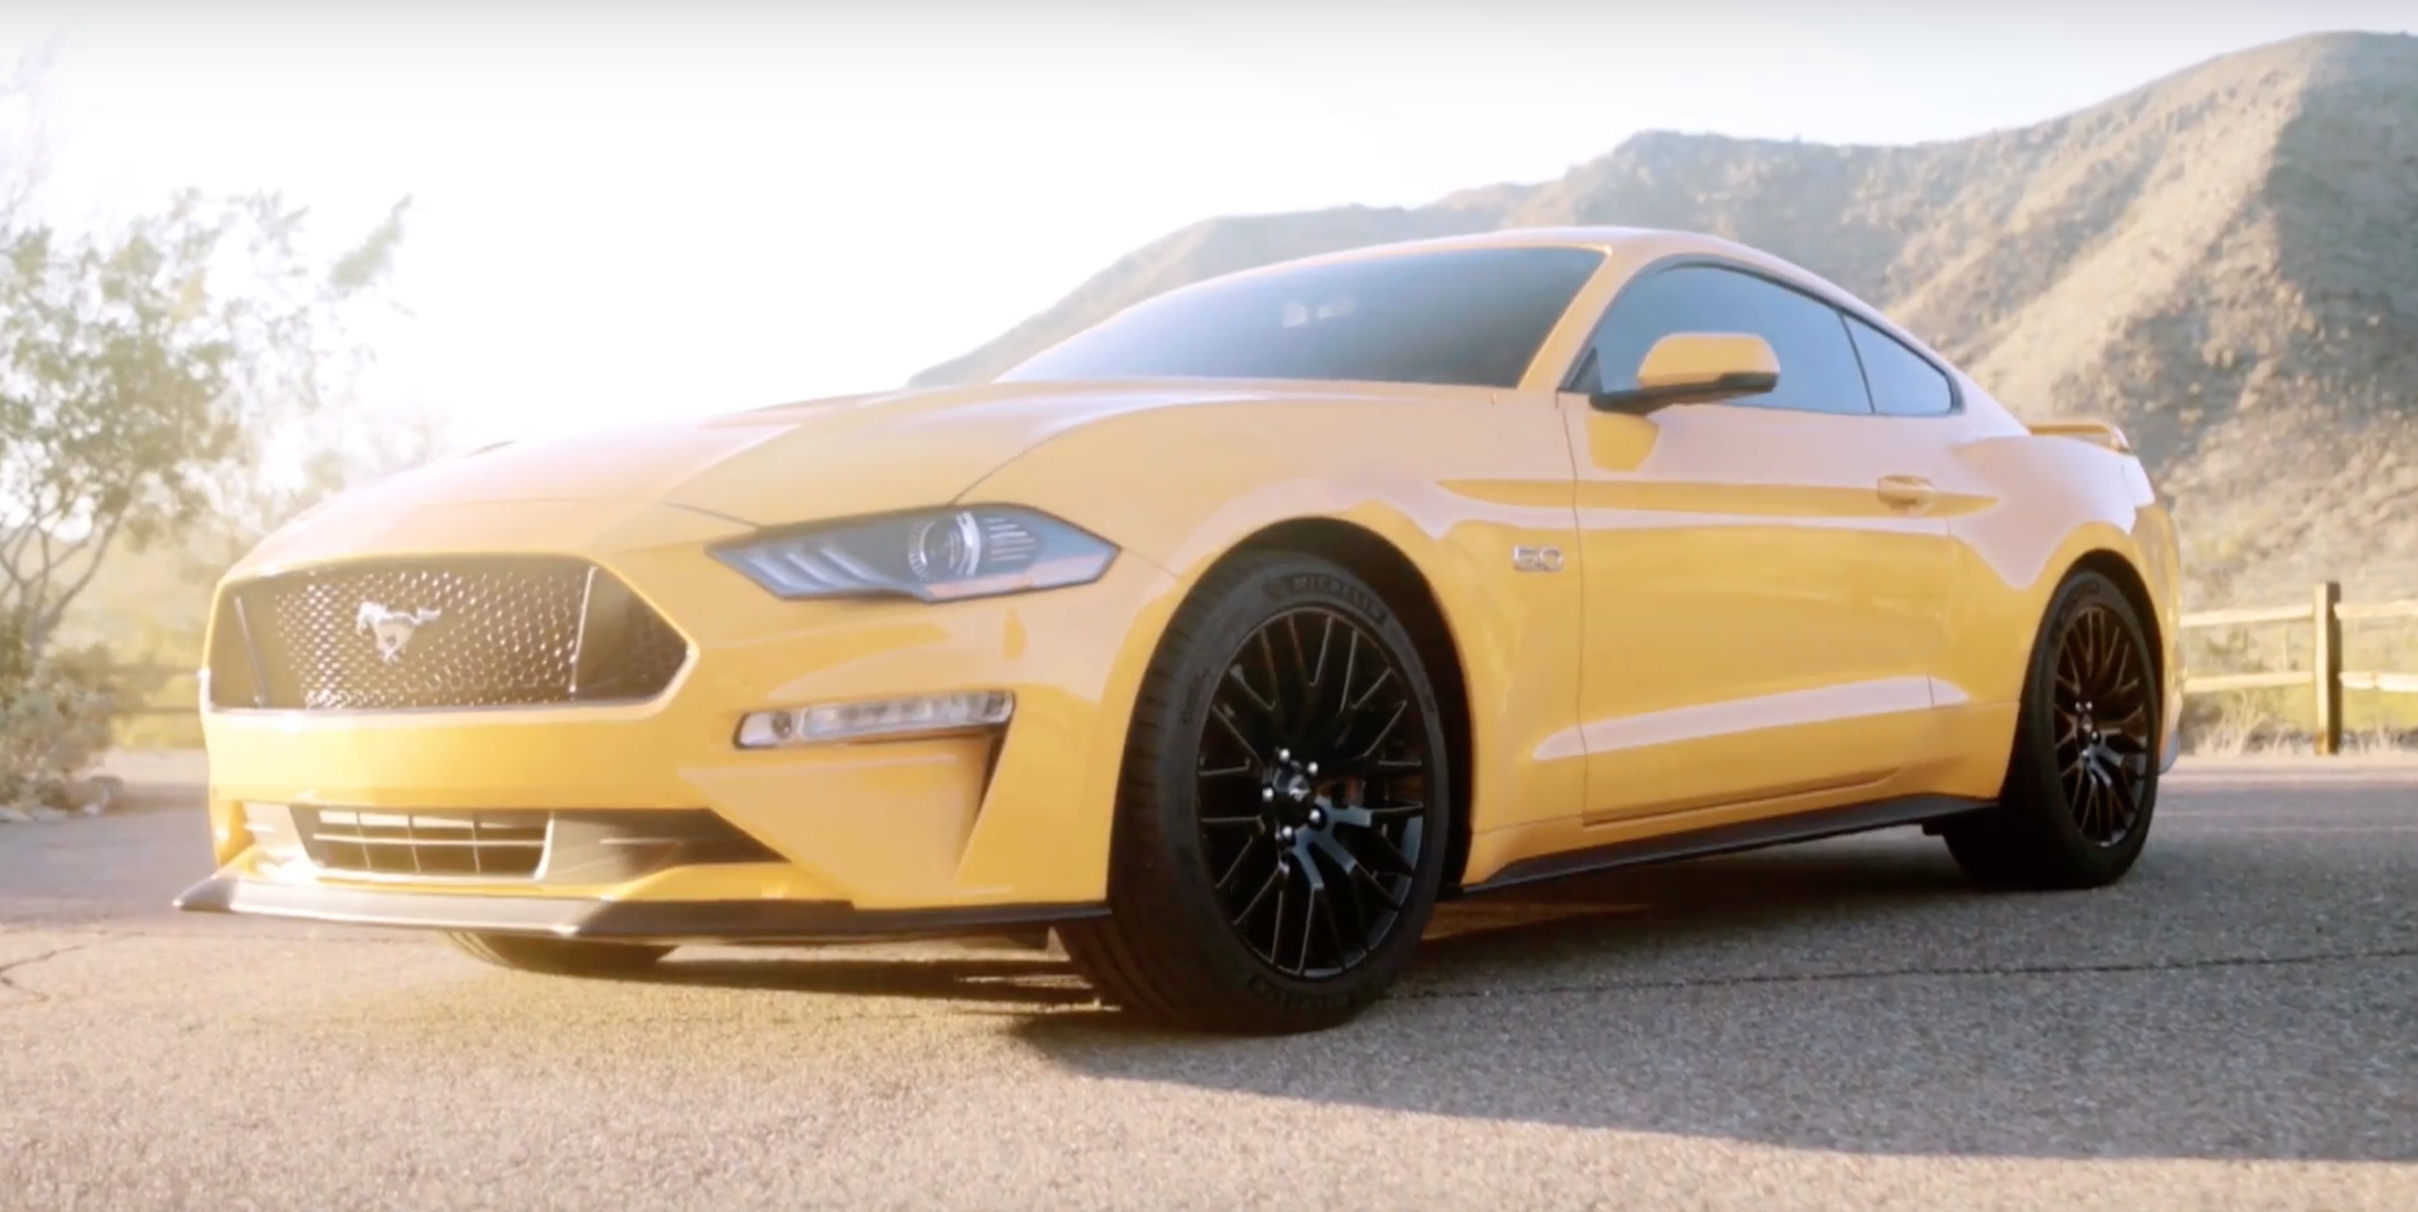 Ford Mustang 2018 - Autovisie.nl